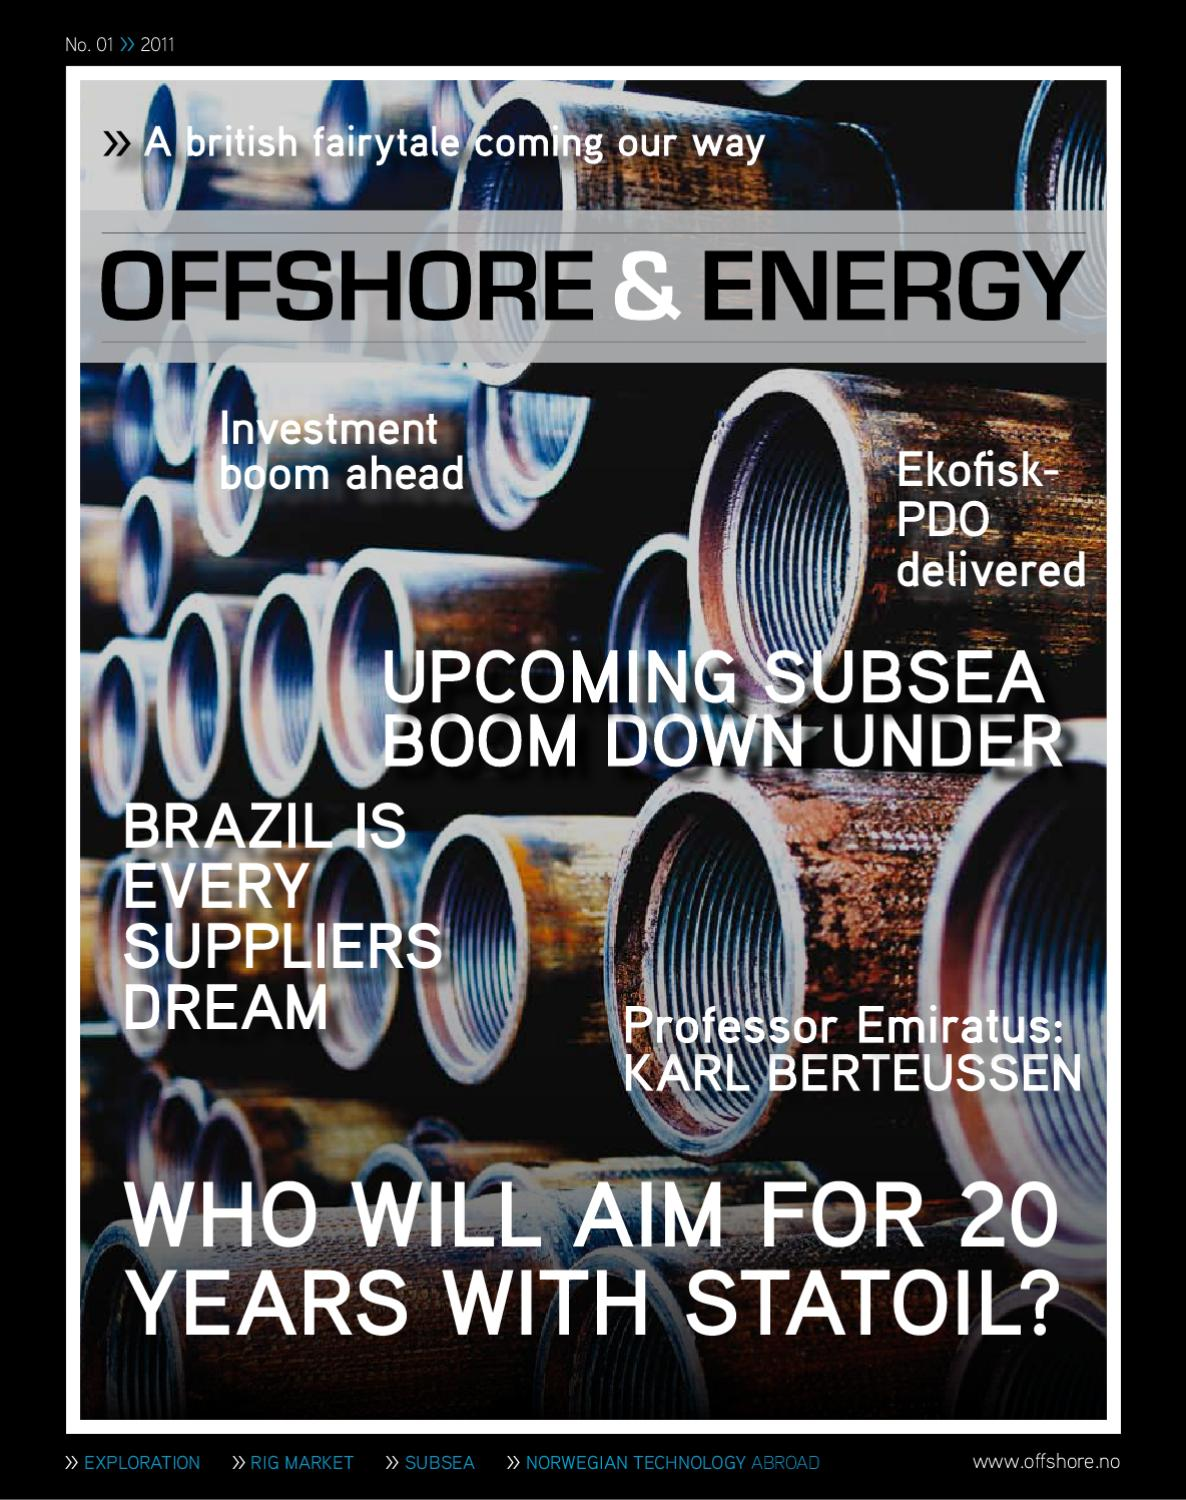 Offshore & Energy - NO 1-2011 by Offshore no AS - issuu